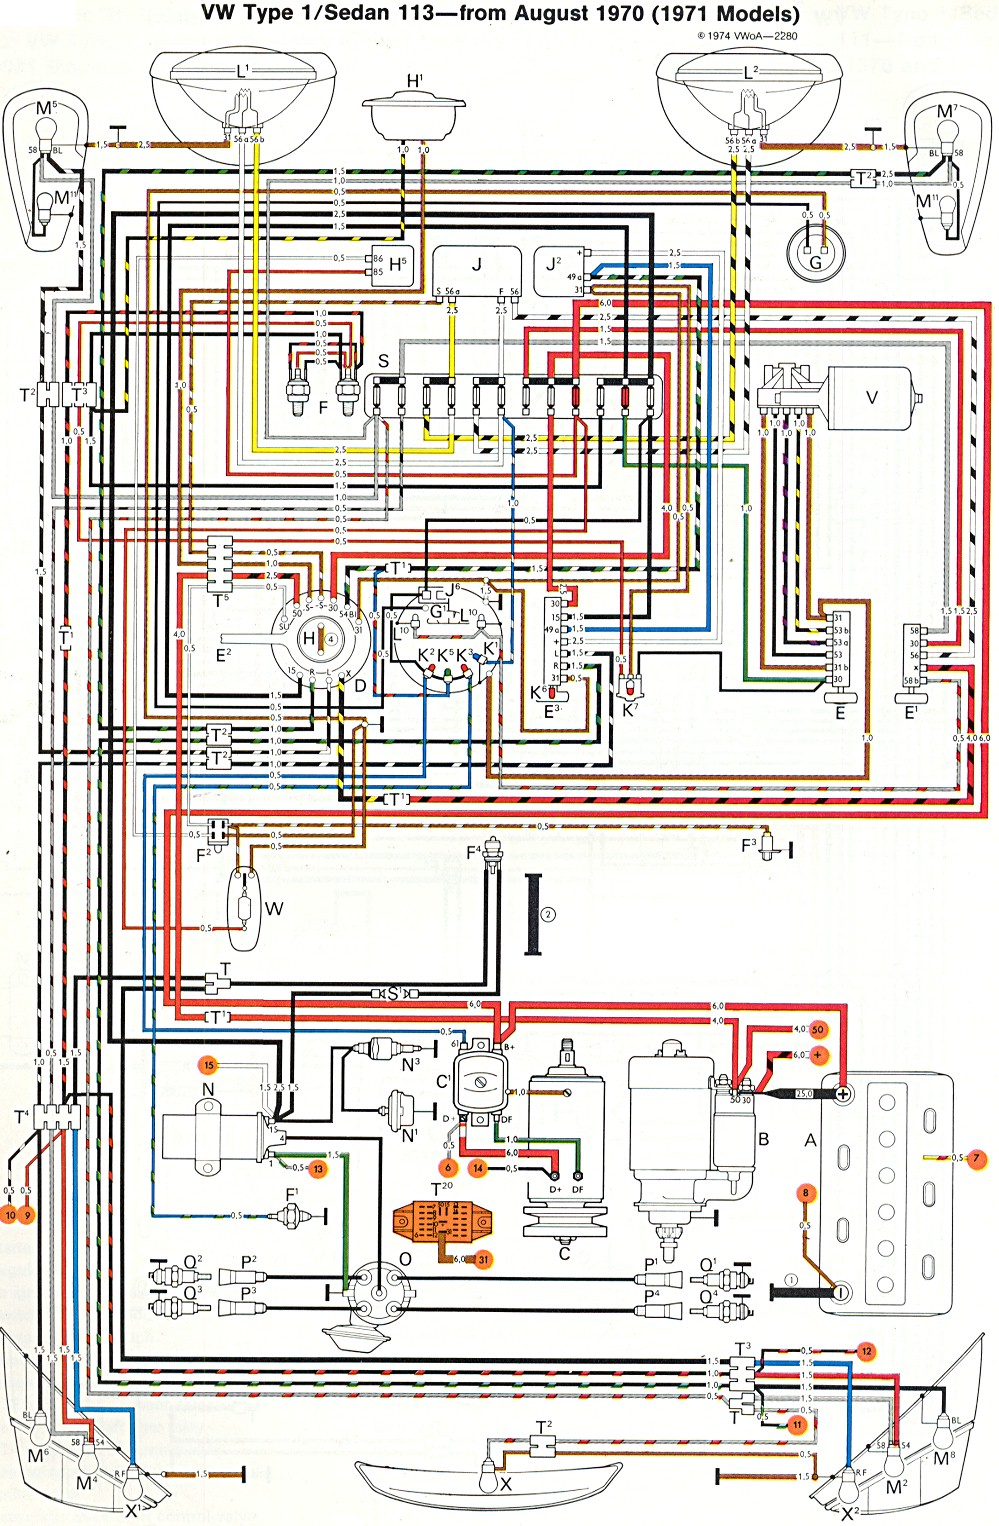 bug_super_71 1971 super beetle wiring diagram thegoldenbug com vw bug wiring diagram at soozxer.org